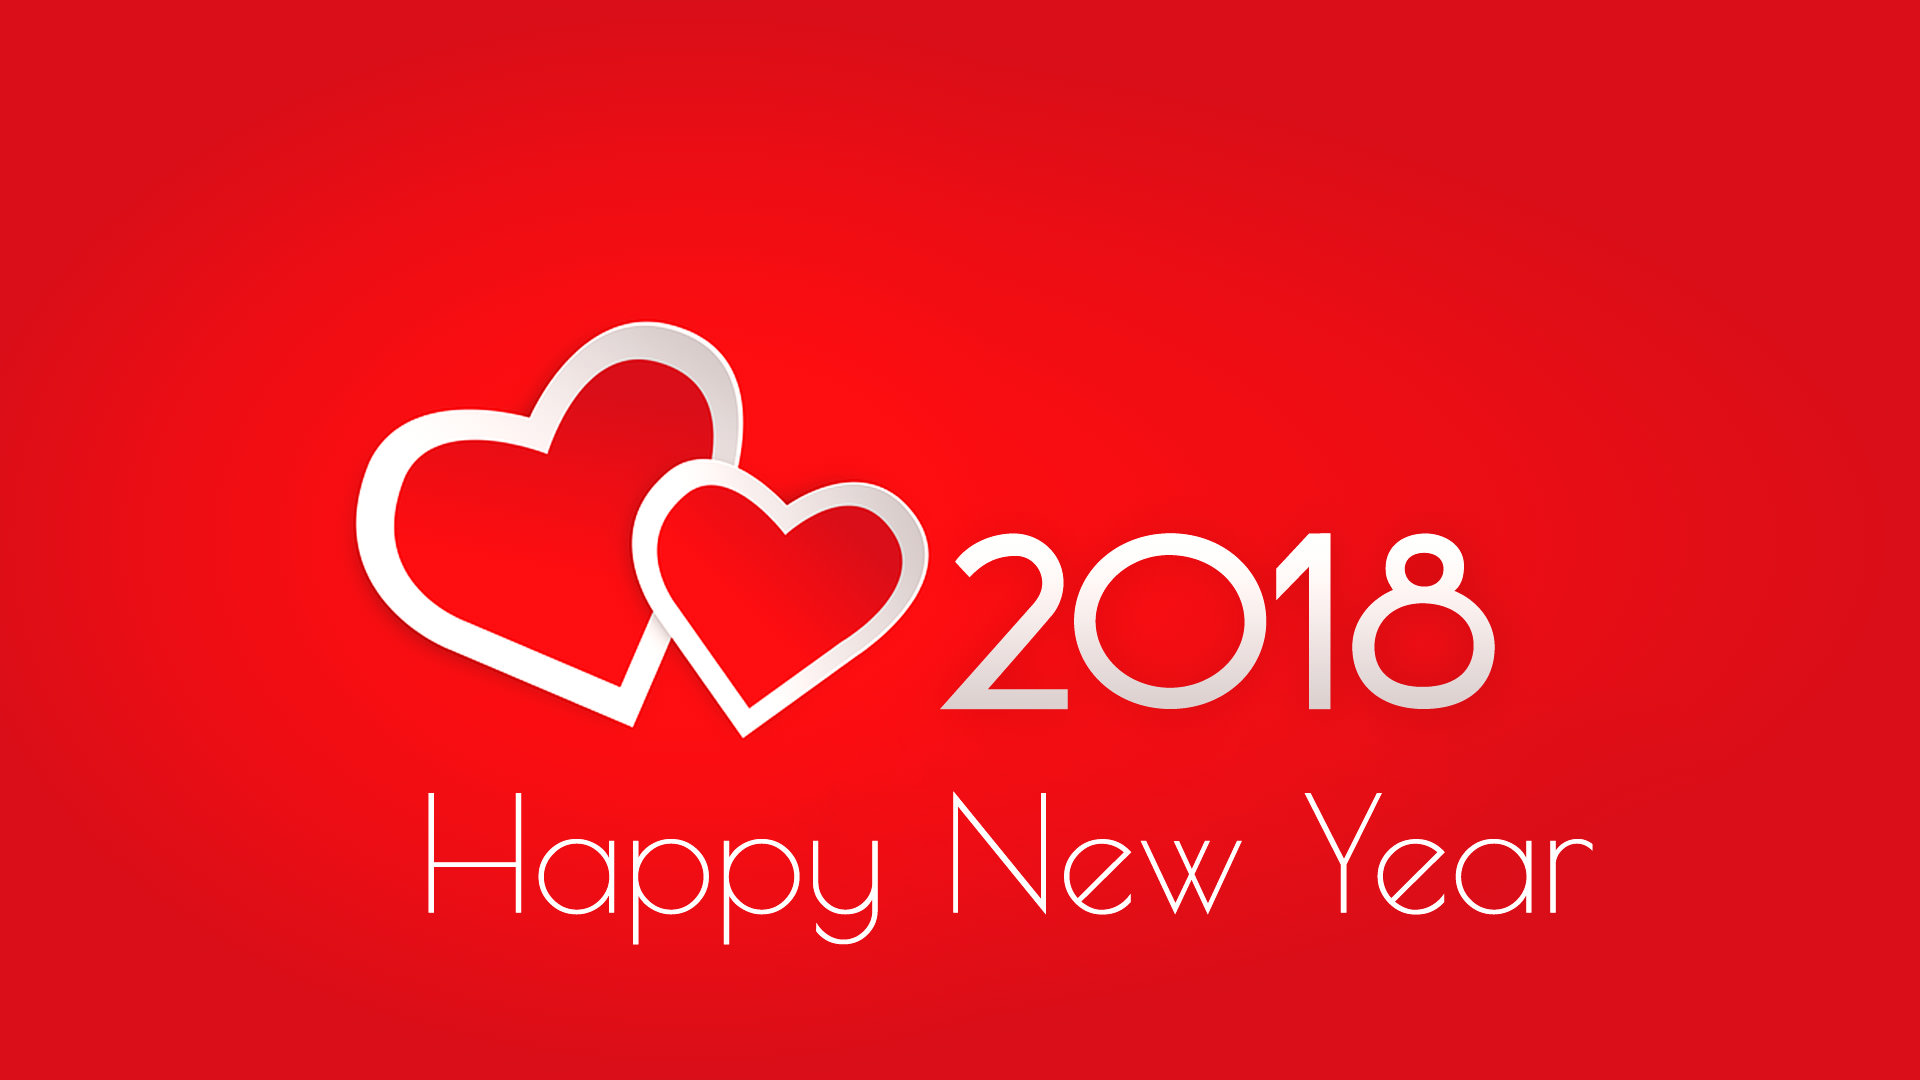 Special Happy New Year 2018 Wallpaper, HD Greetings Desktop Images